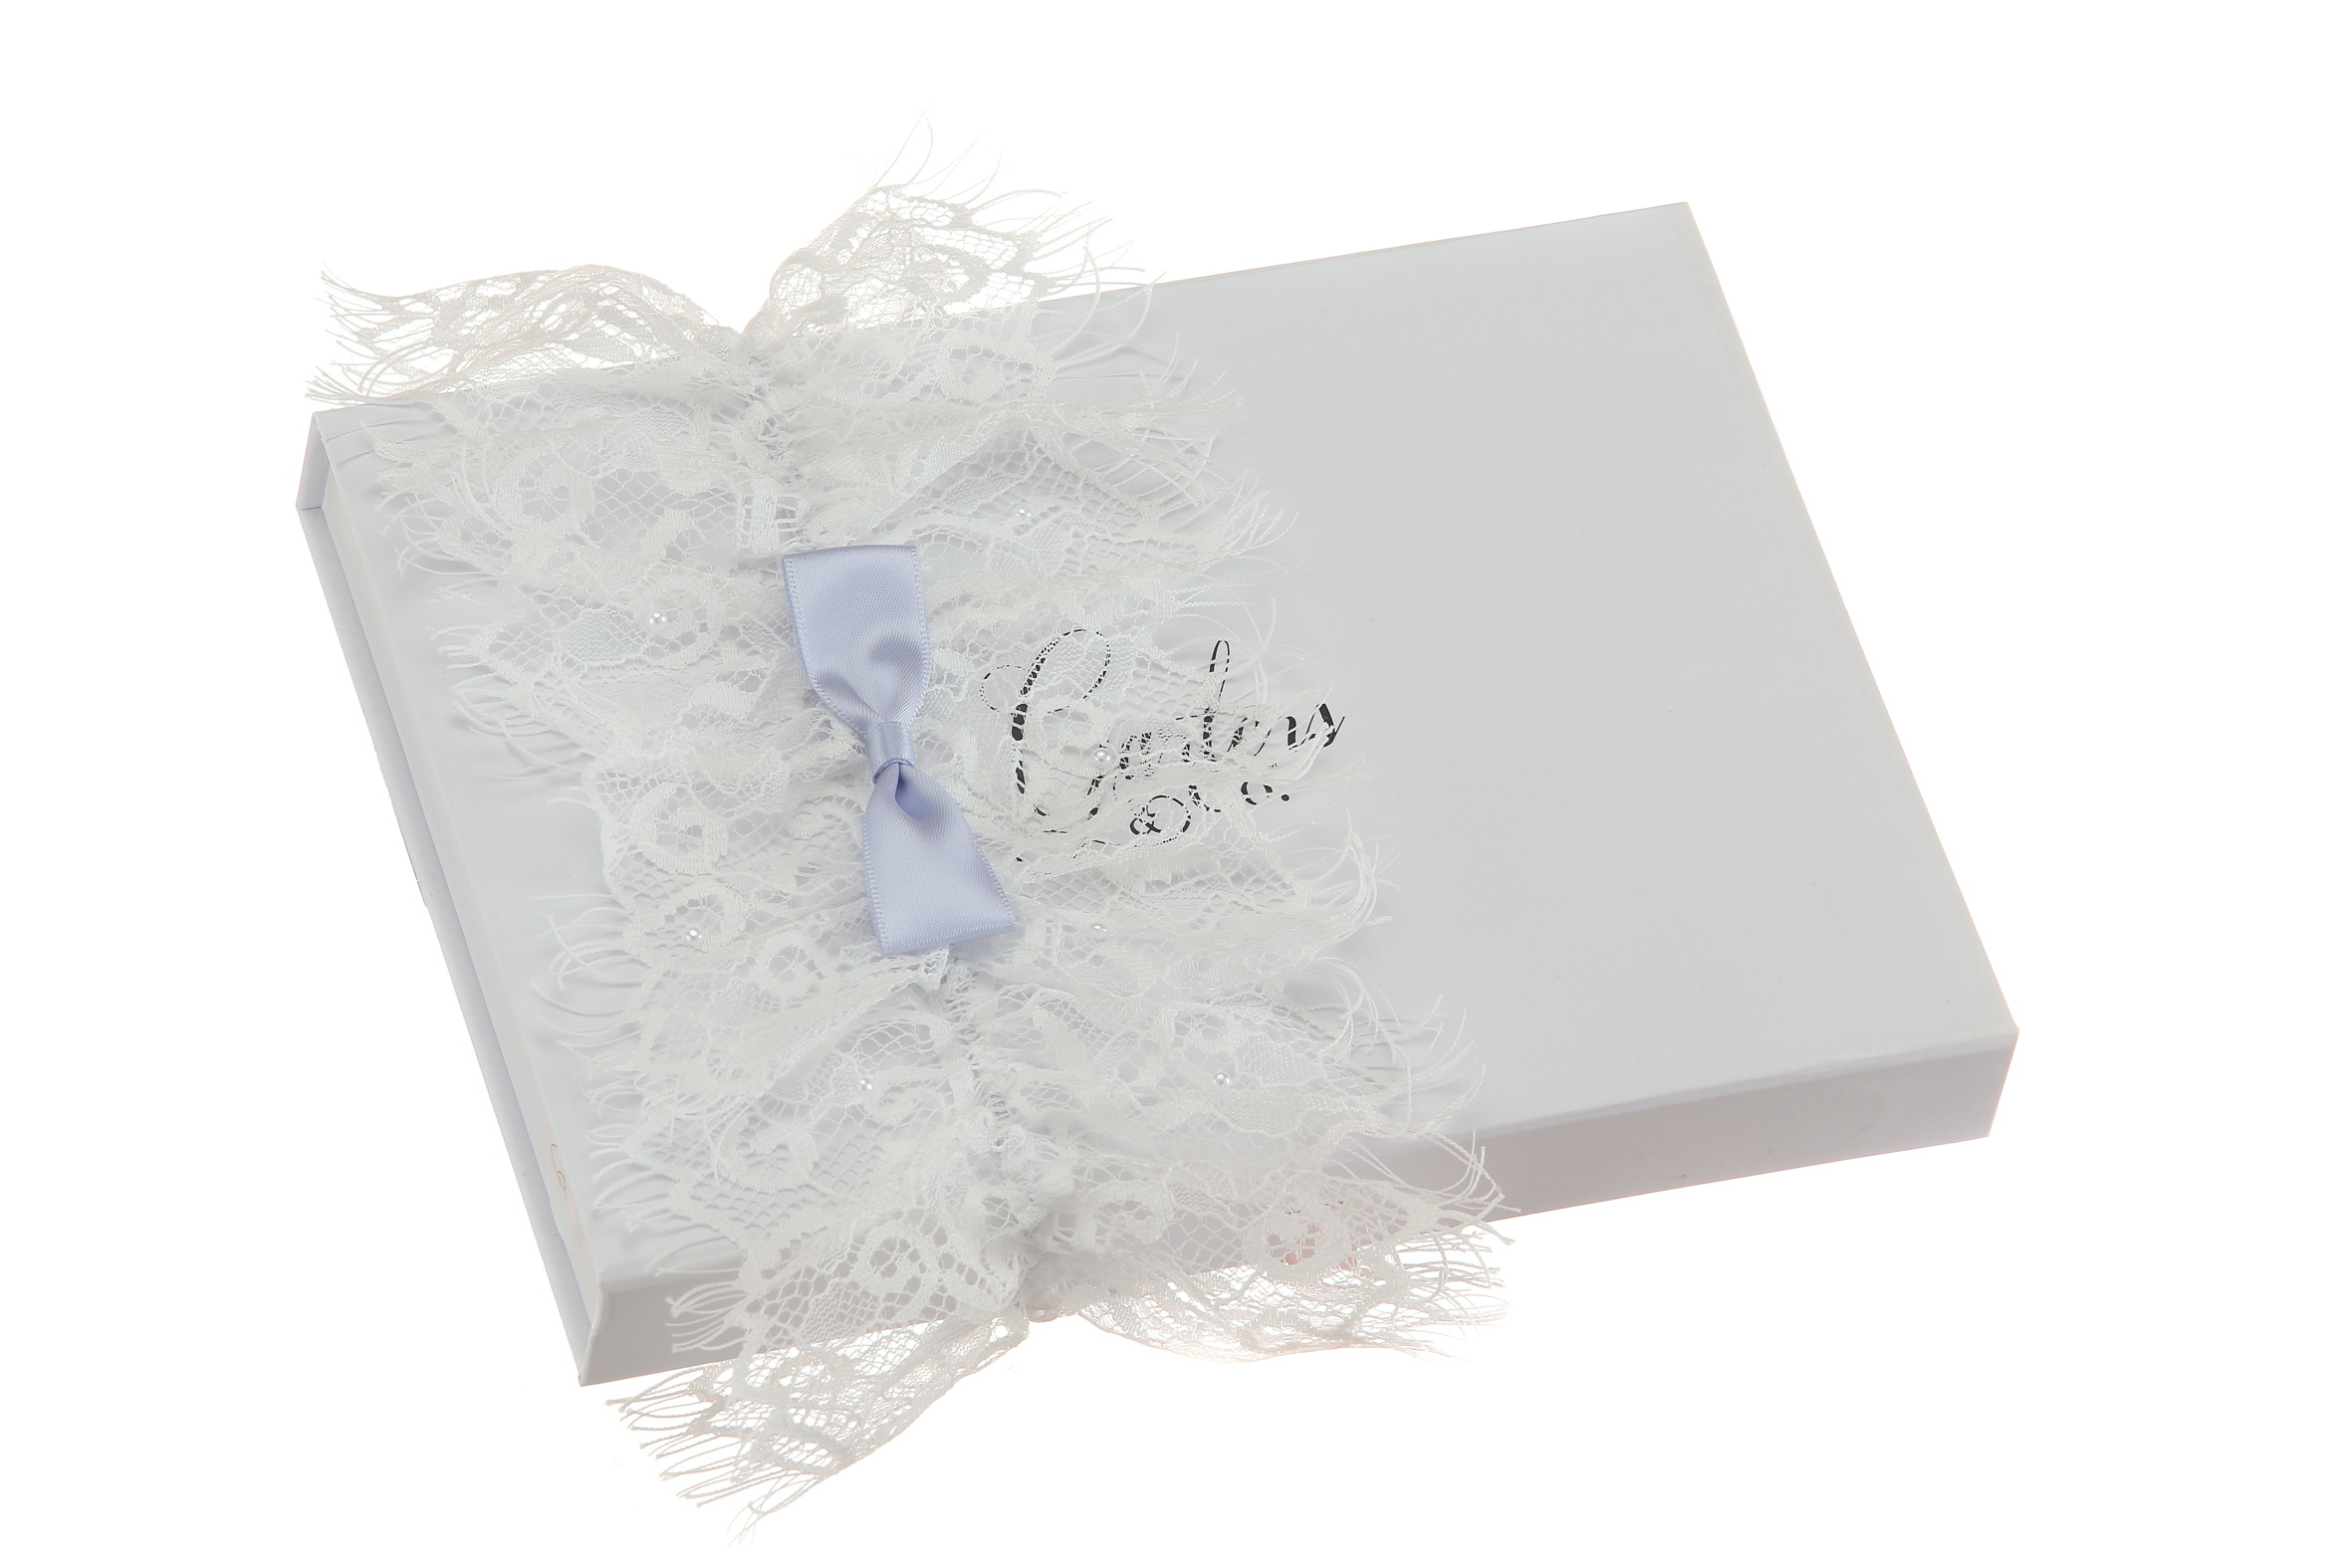 Blue Bow on a Lace Wedding Garter